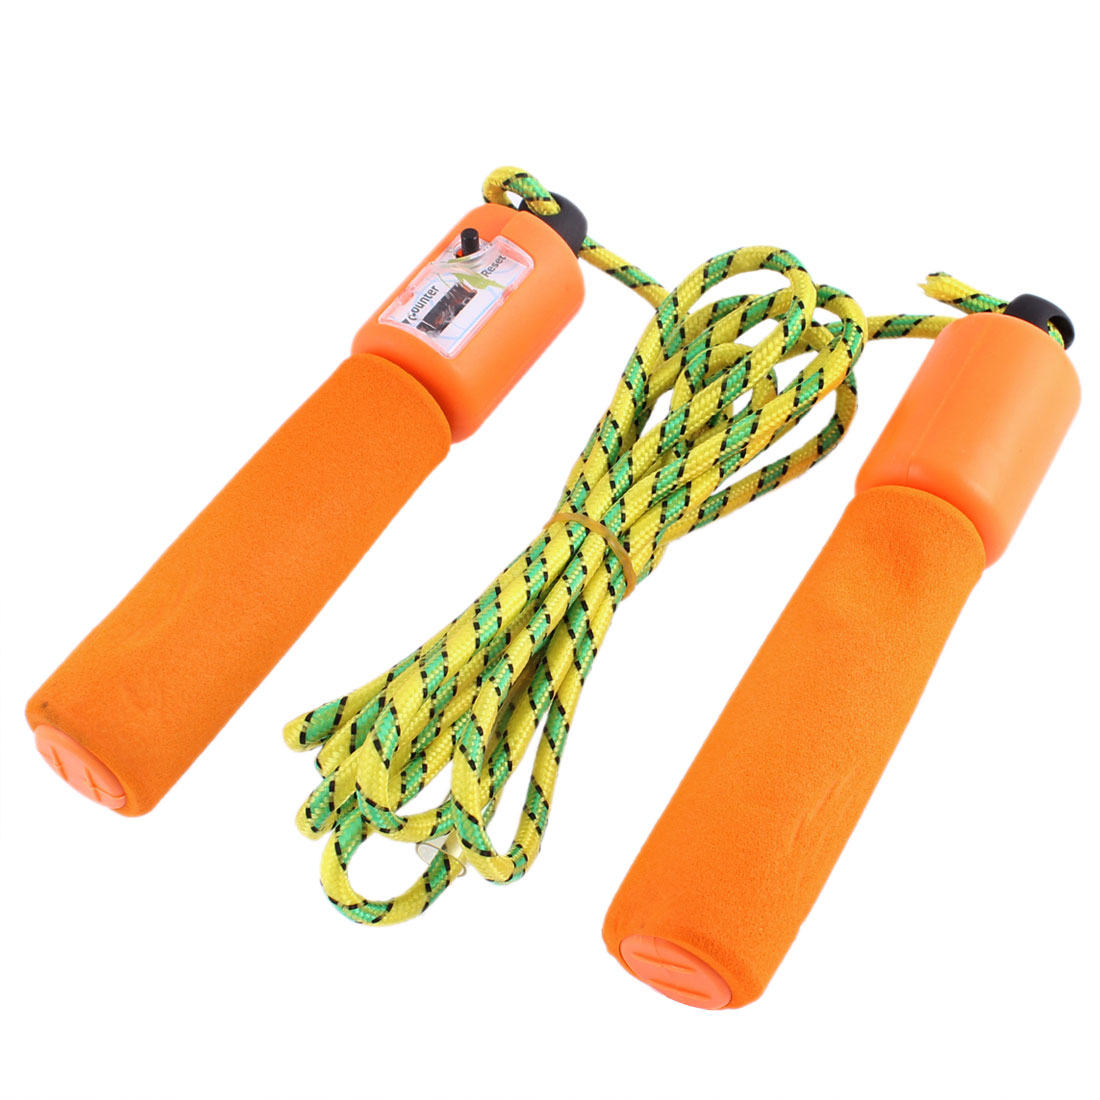 Nonslip Handle Skipping Jump Counter Plastic Rope Tri Color for Exercise